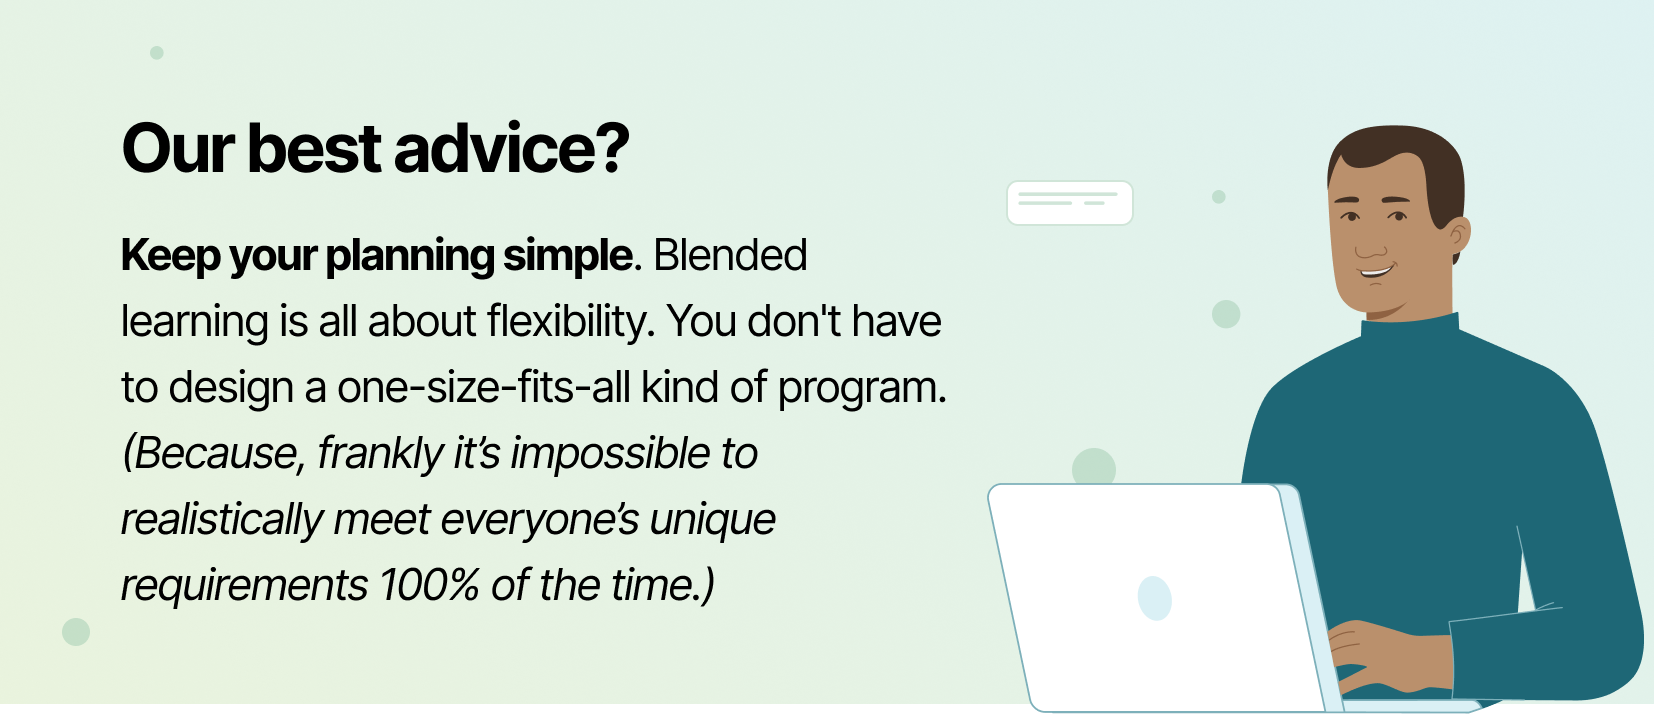 Profi advice for planning around learning schedules in your BLX strategy